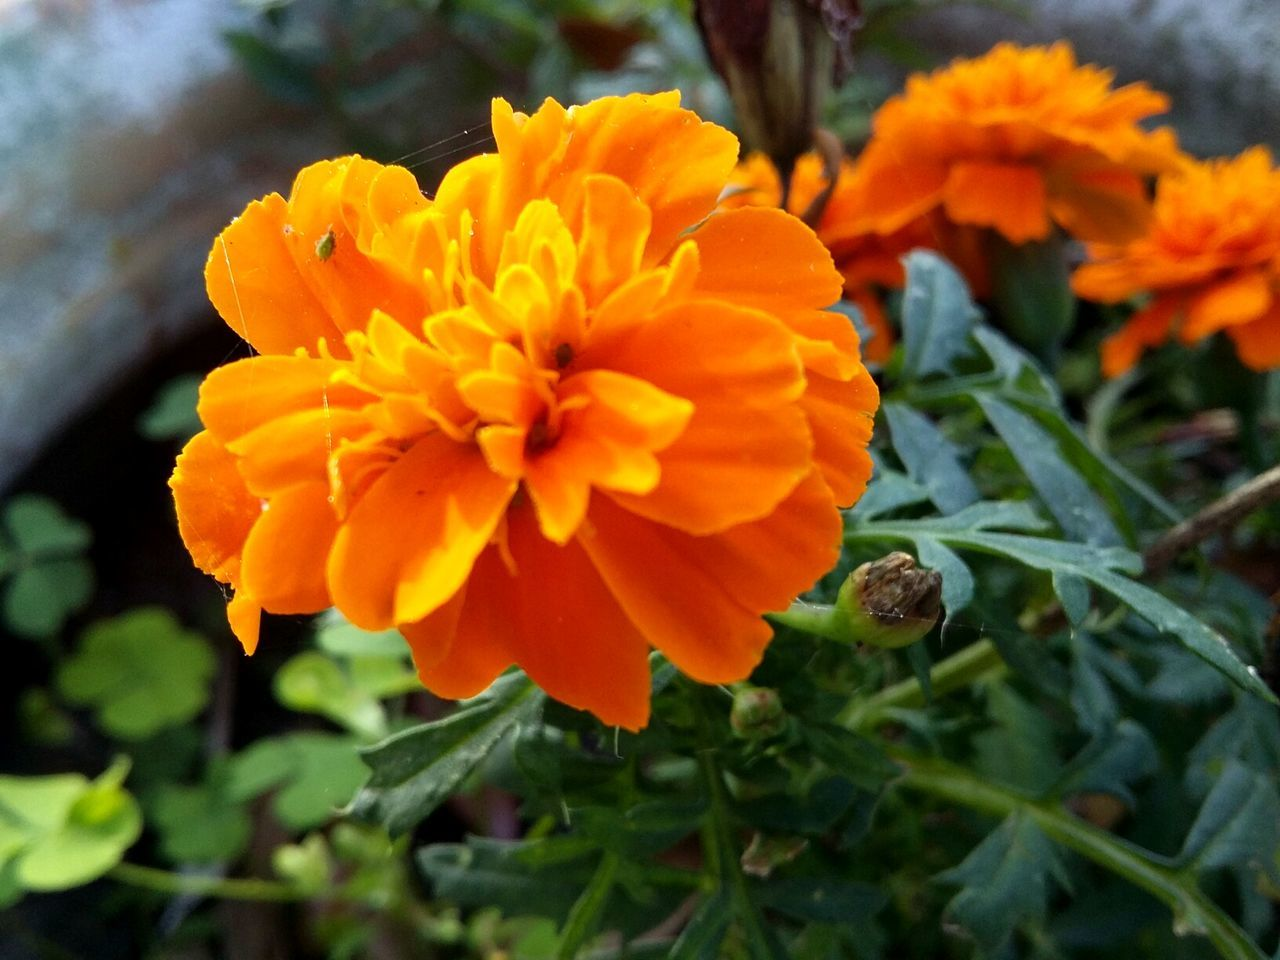 flower, beauty in nature, nature, fragility, growth, petal, freshness, flower head, orange color, plant, no people, blooming, outdoors, day, close-up, marigold